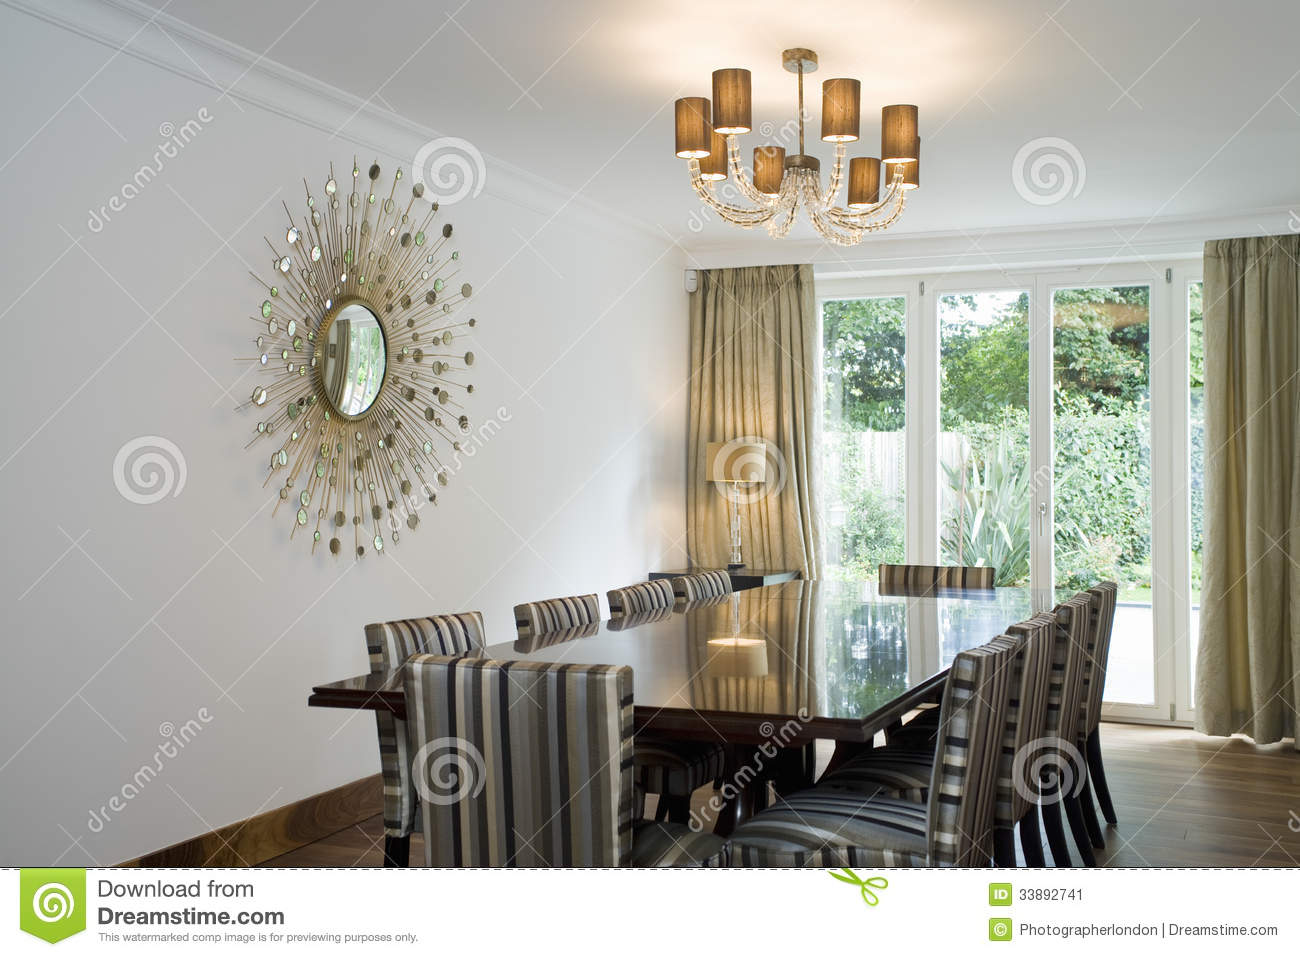 Chandelier Over Dining Table And Art On Wall Stock Image